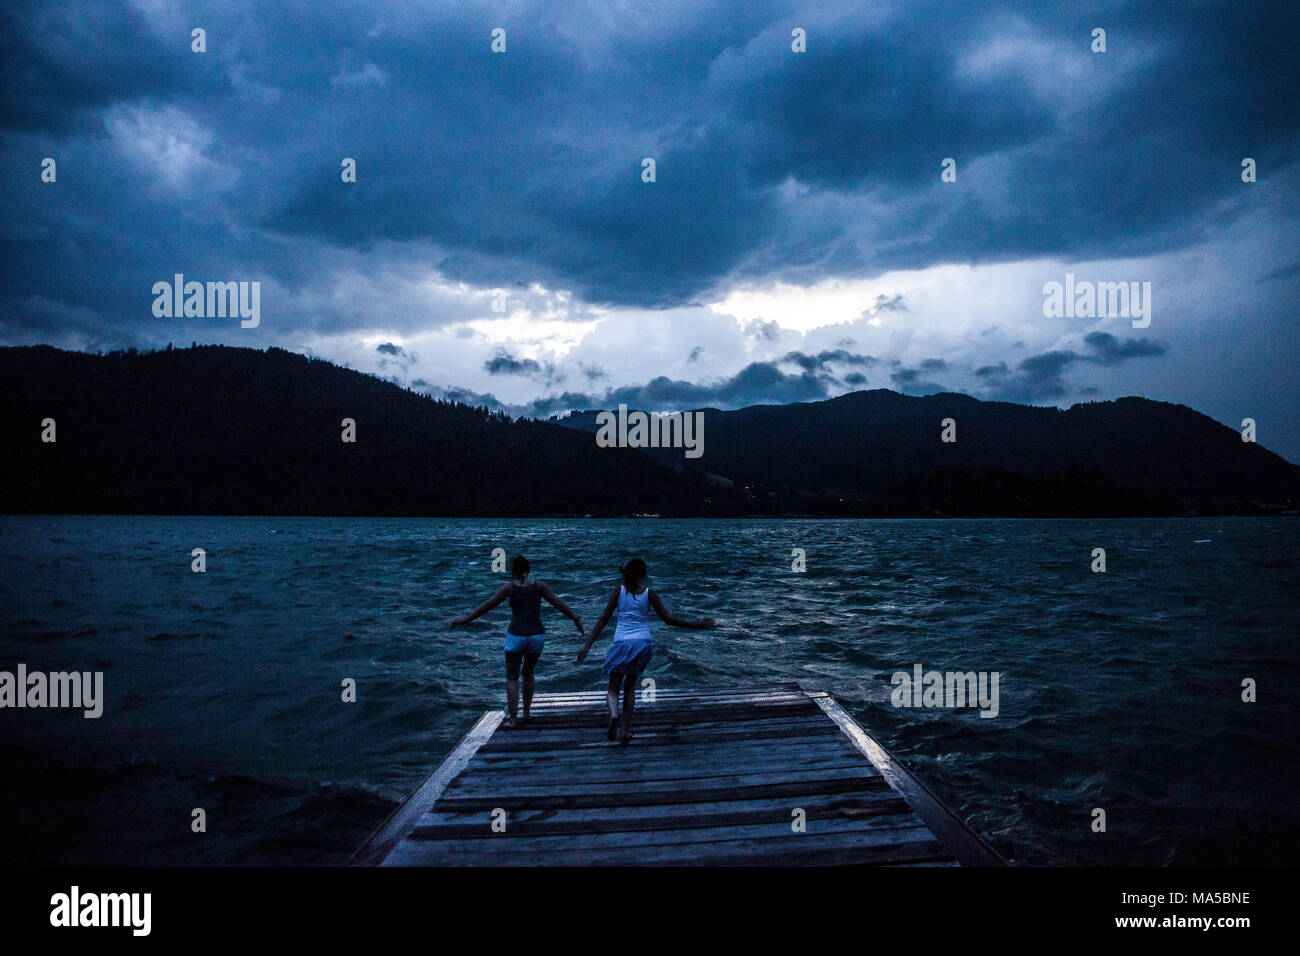 Two girls jump on a jetty on the Schliersee (lake) in expectation of a heavy thunderstorm - Stock Image